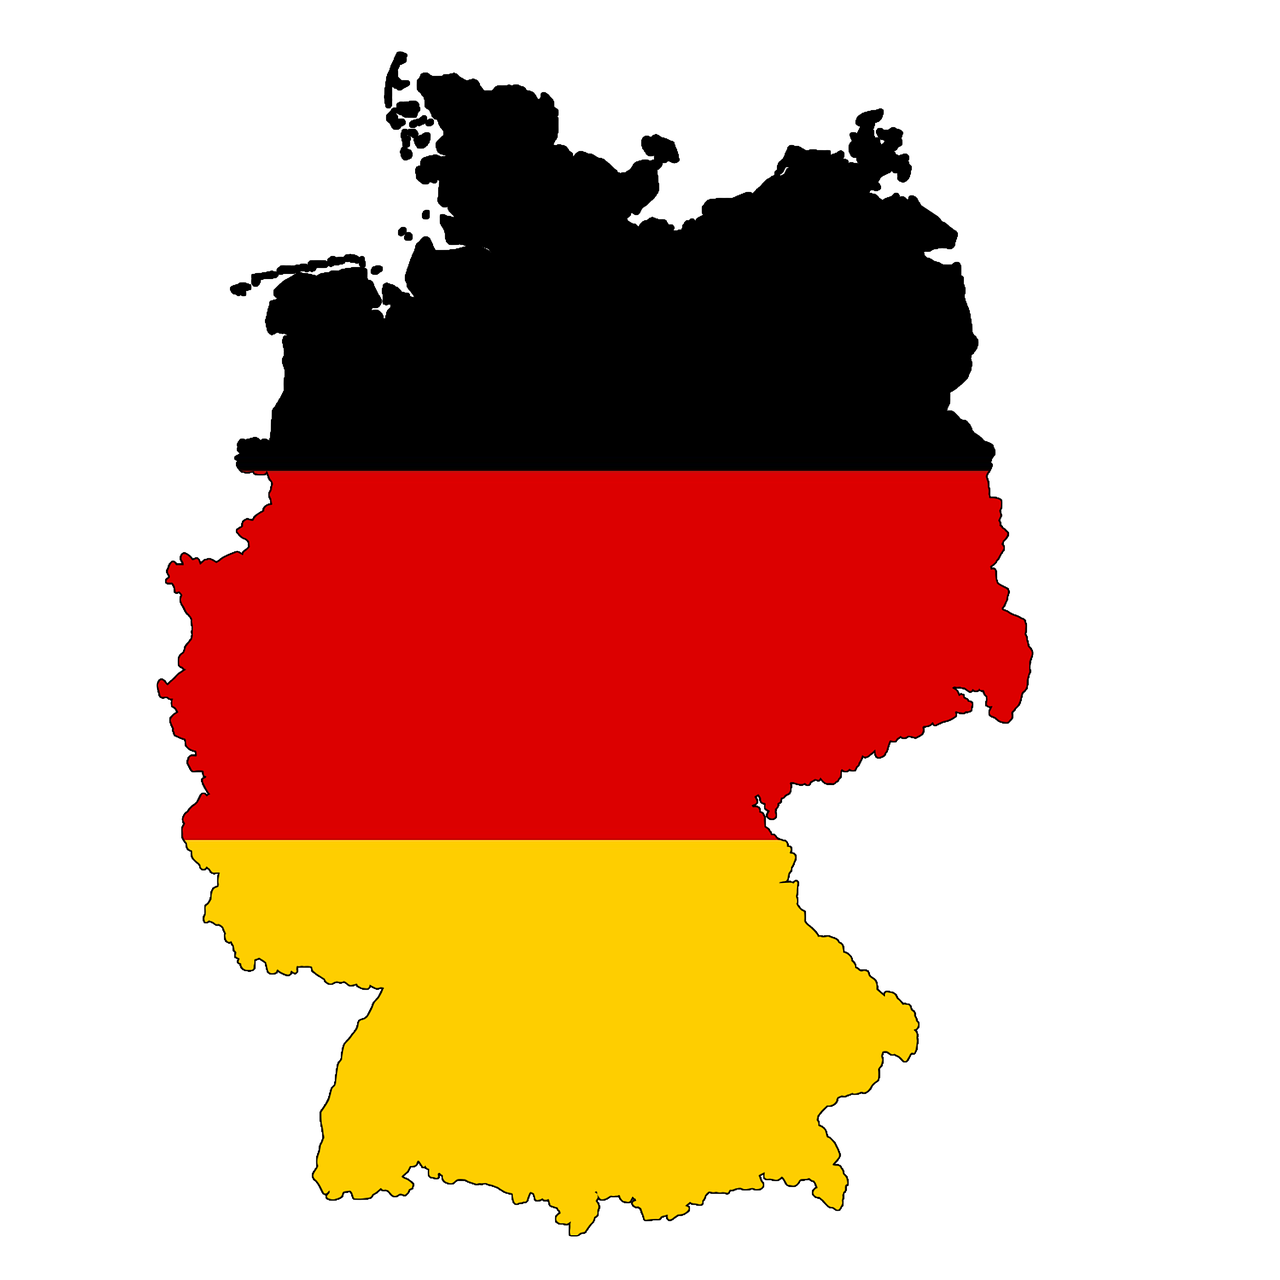 Versions Of The German Flag By Kristo1594 On Deviantart German Flag Flag Flags Of The World